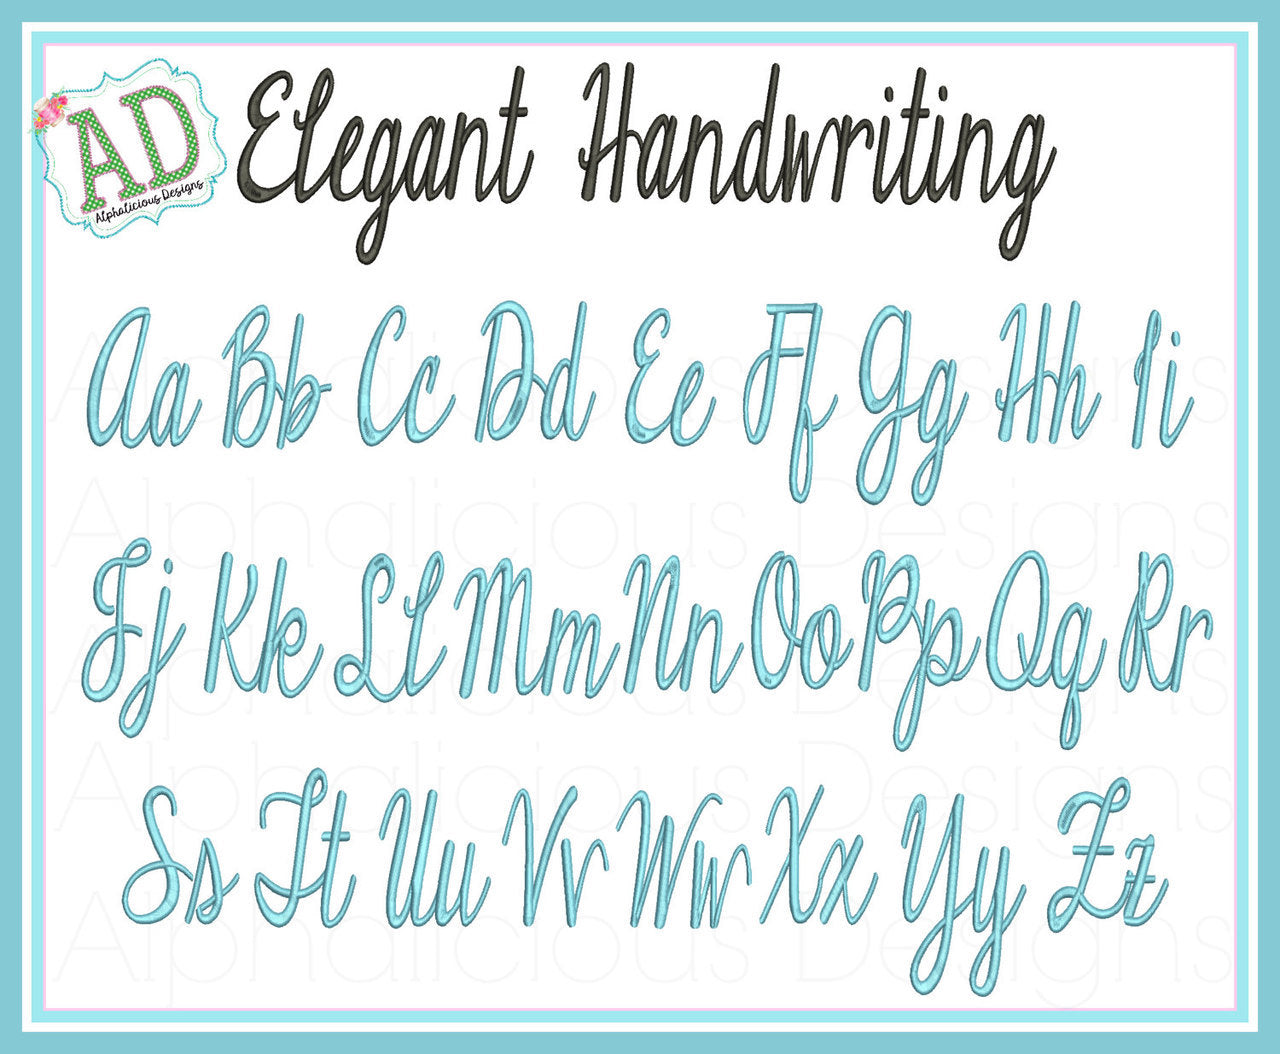 Elegant Handwriting Embroidery Font